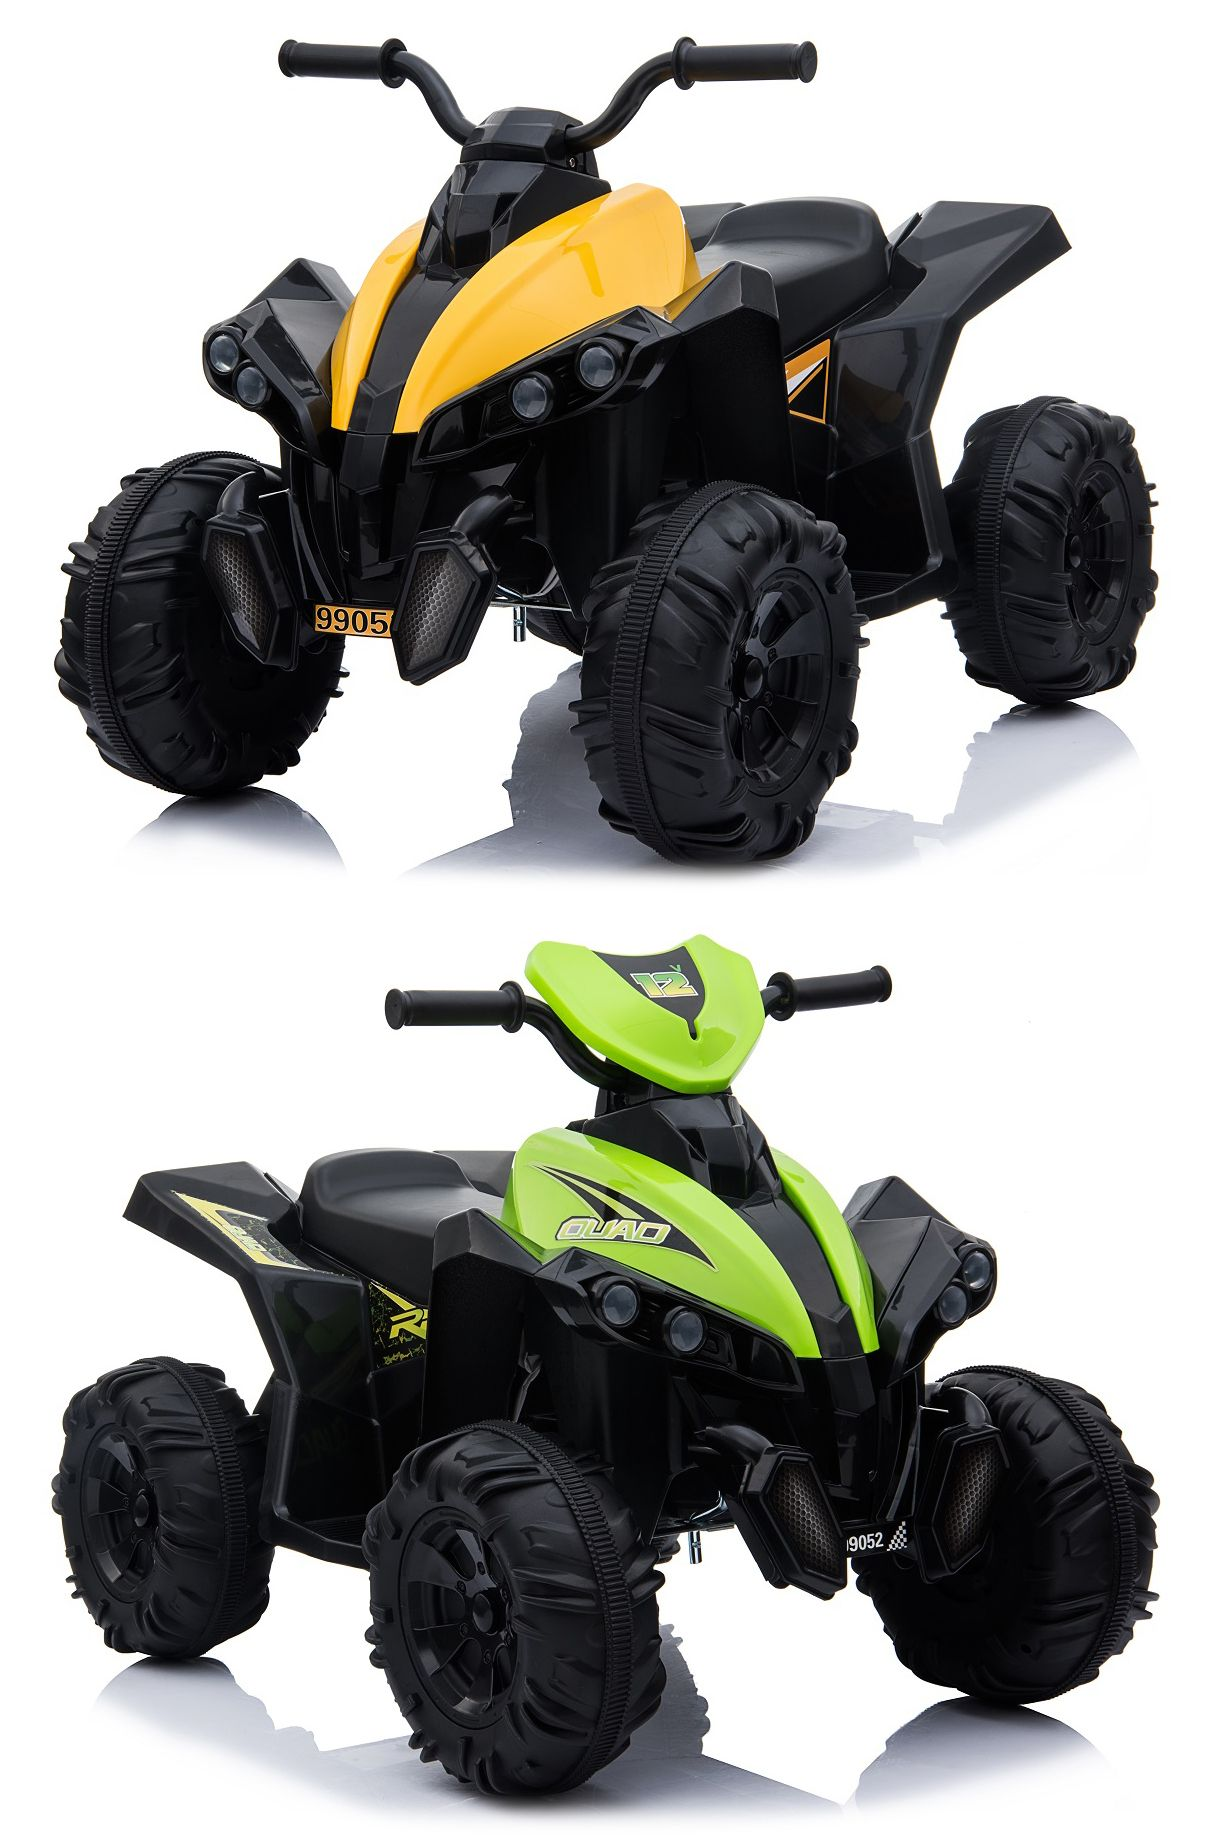 atv quad kindermotorrad kinderfahrzeug elektro pocket bike. Black Bedroom Furniture Sets. Home Design Ideas